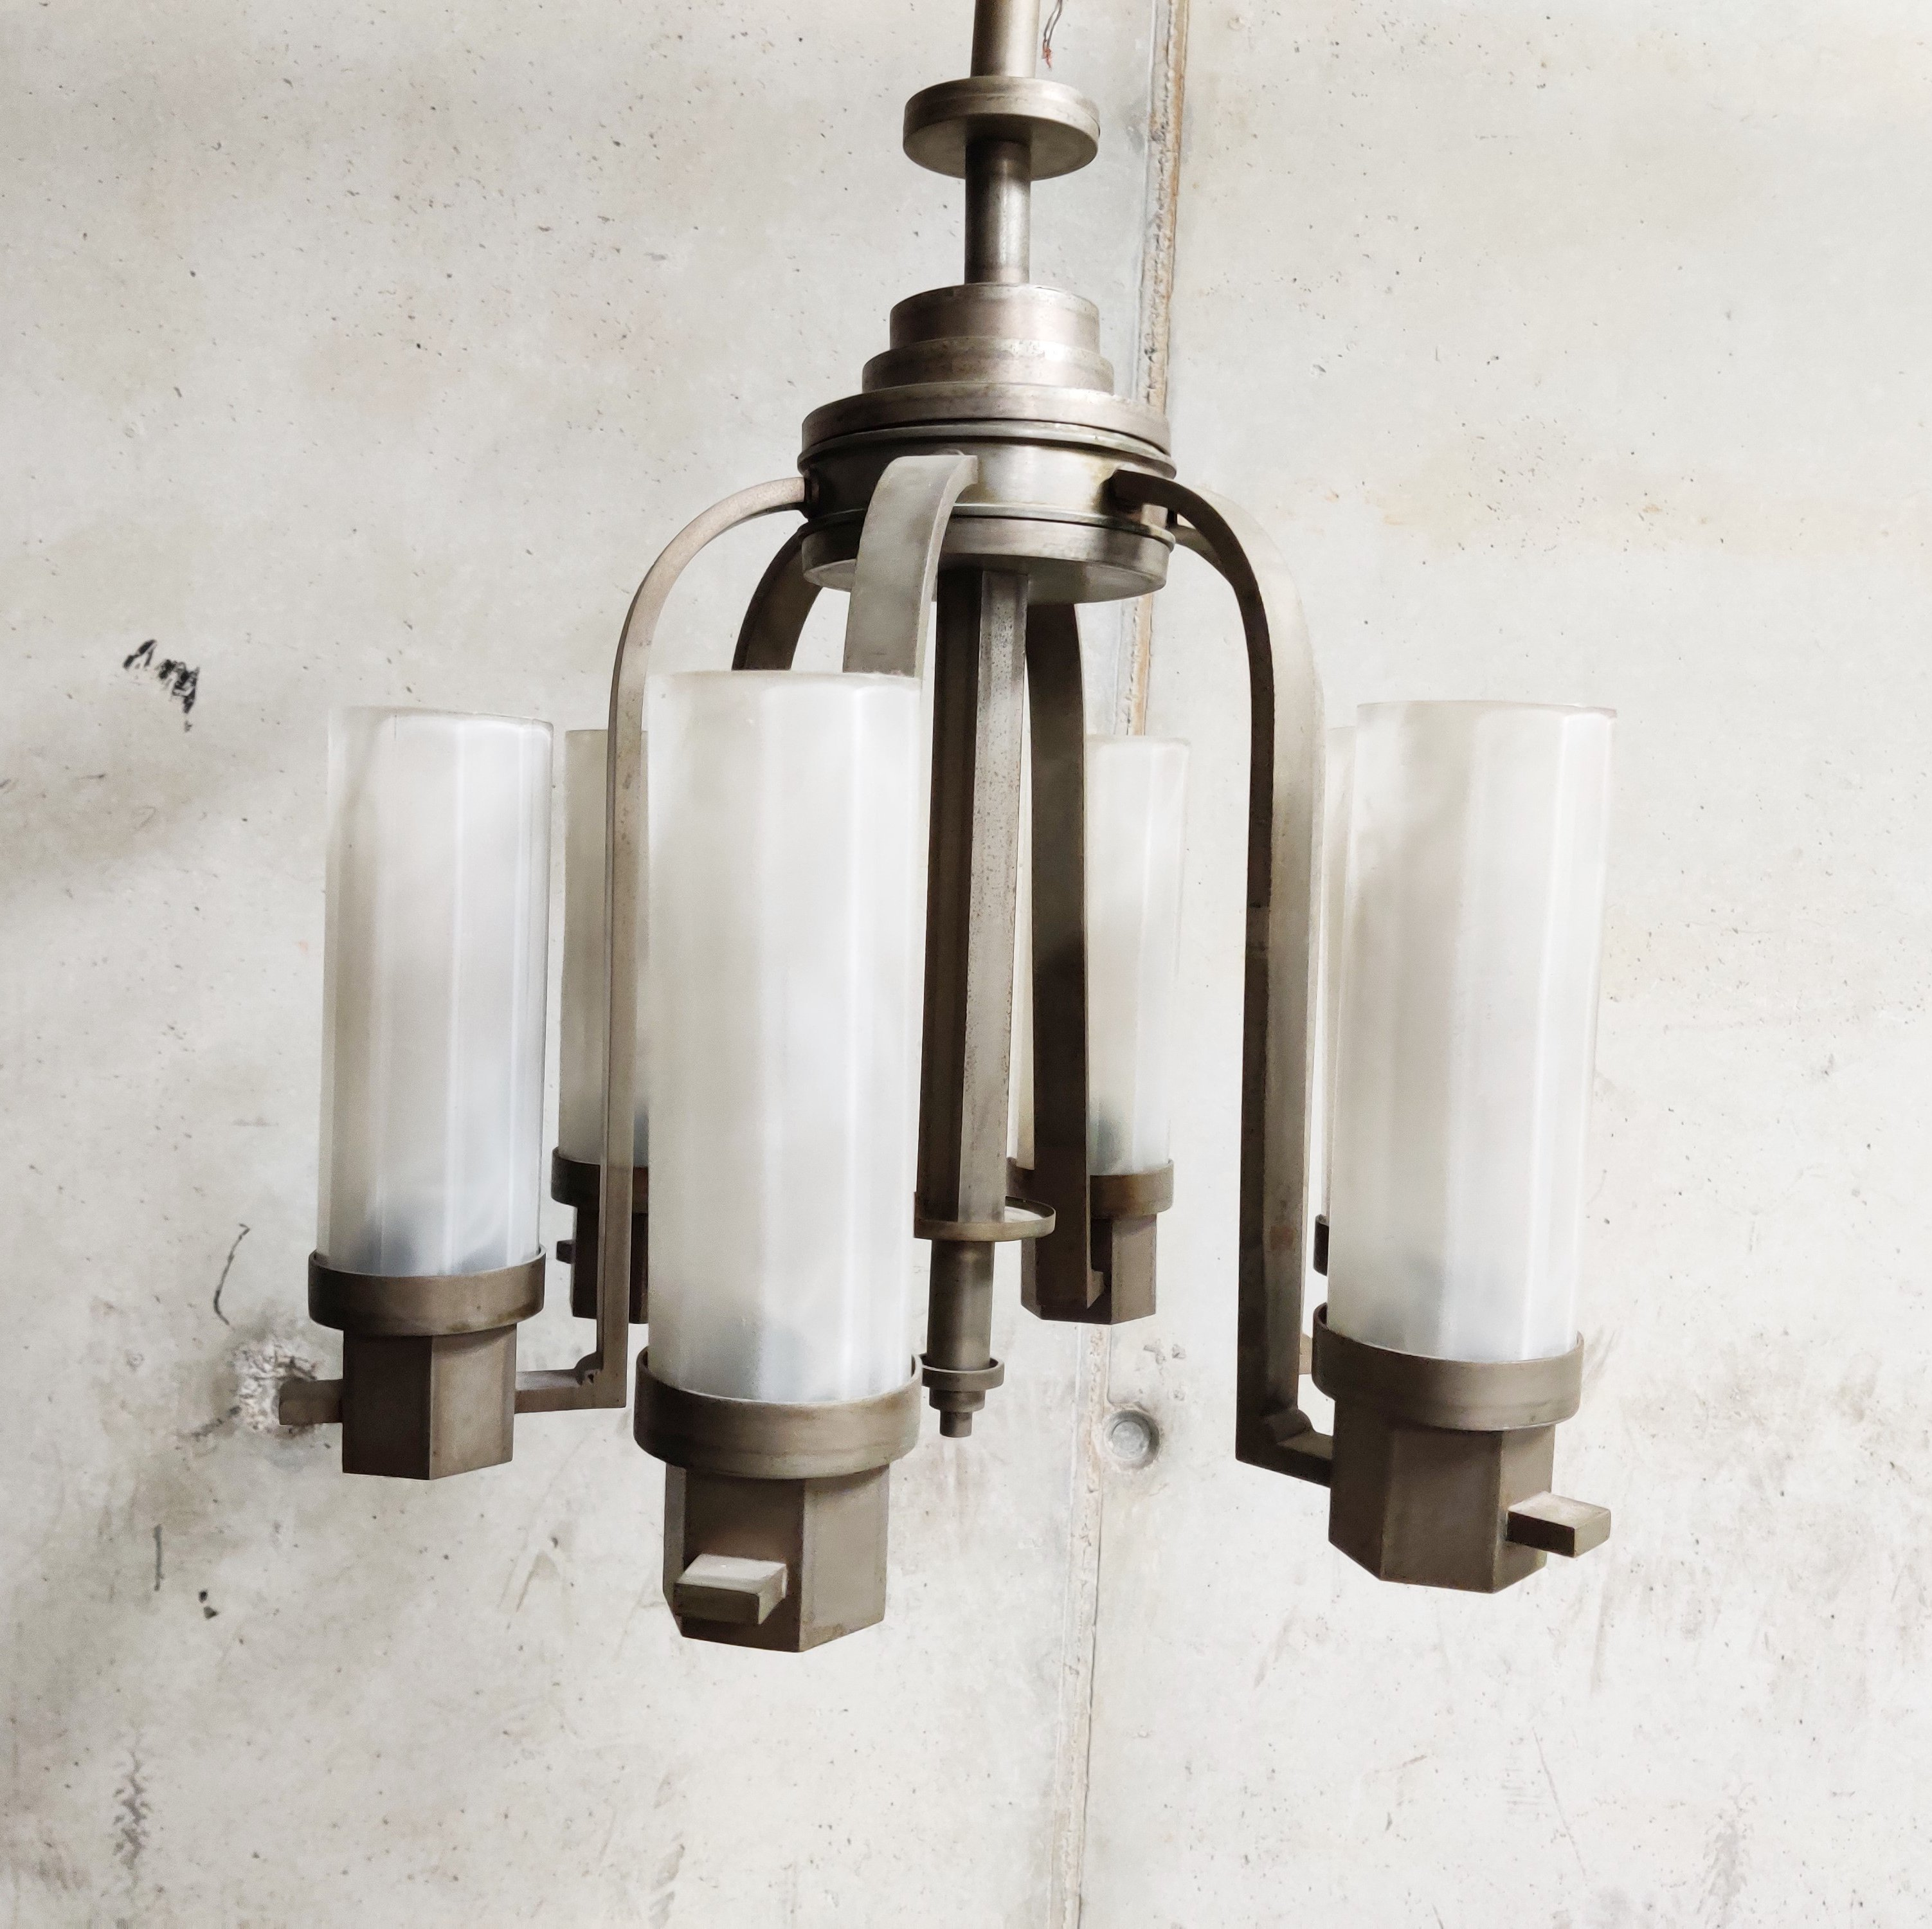 Picture of: Art Deco Chandelier With Frosted Glass Lamp Shades 1930s 123562